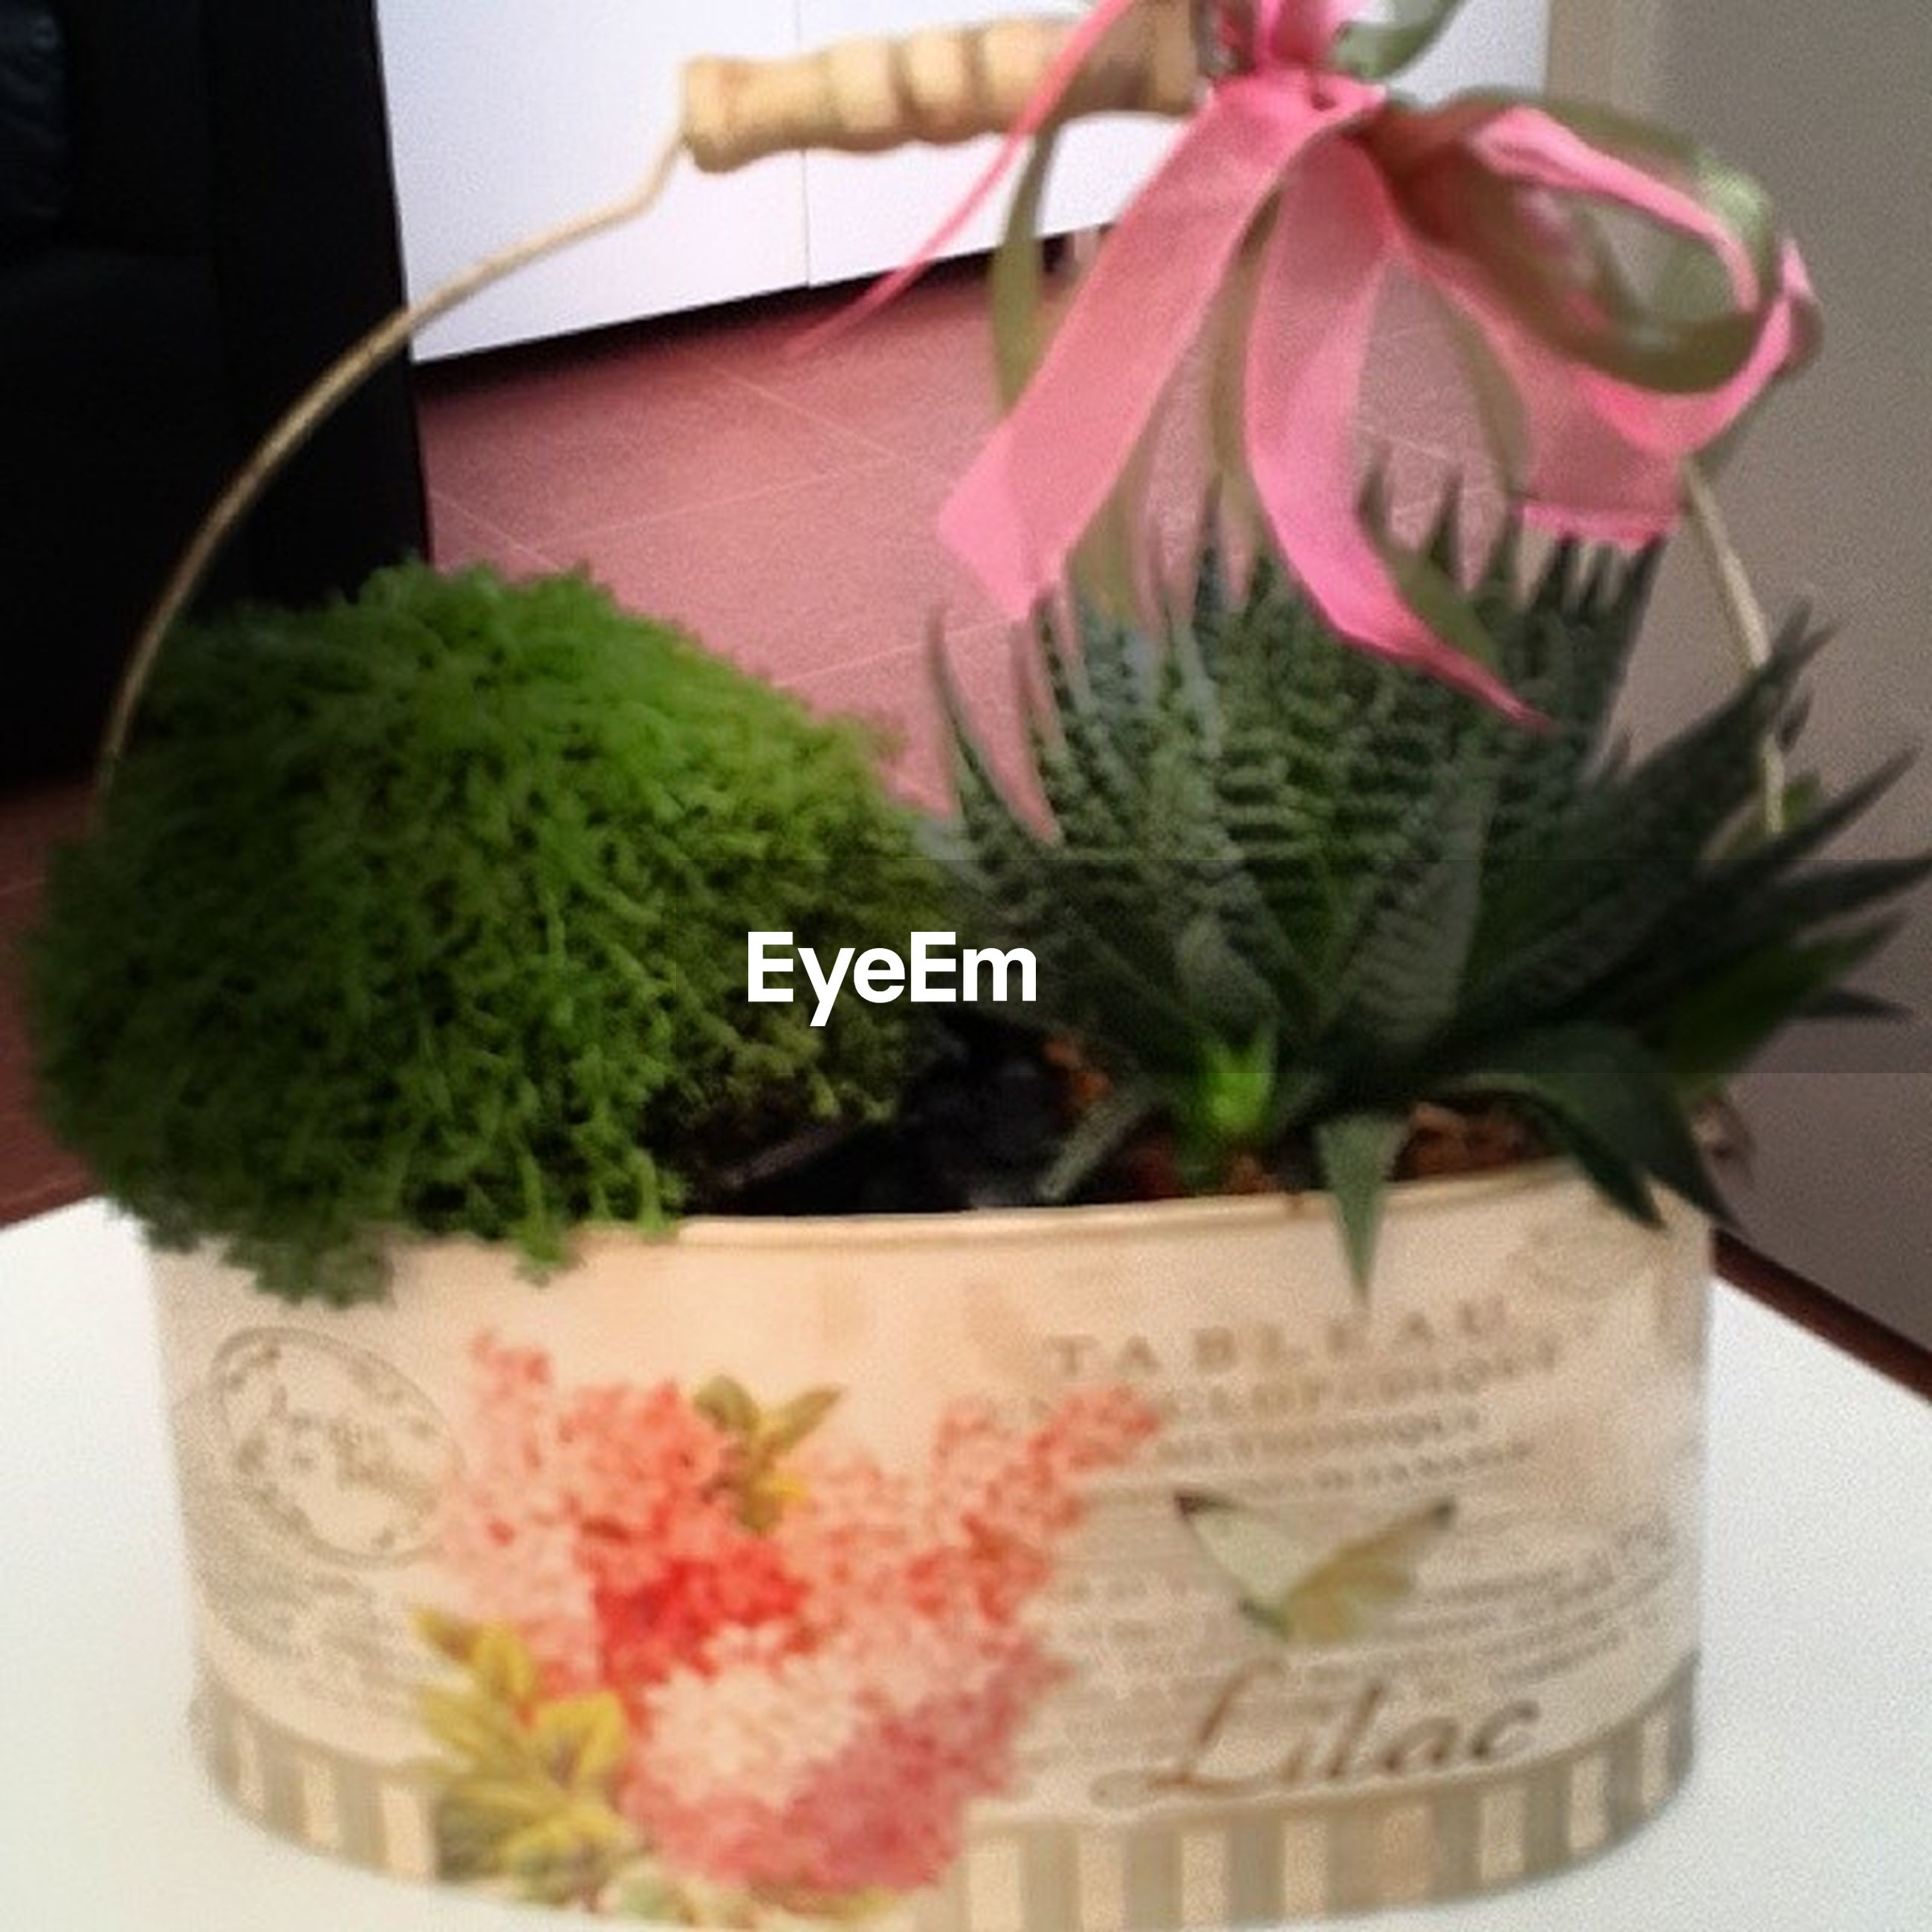 flower, freshness, indoors, close-up, potted plant, table, plant, vase, growth, still life, fragility, leaf, pink color, focus on foreground, decoration, no people, nature, flower pot, green color, home interior